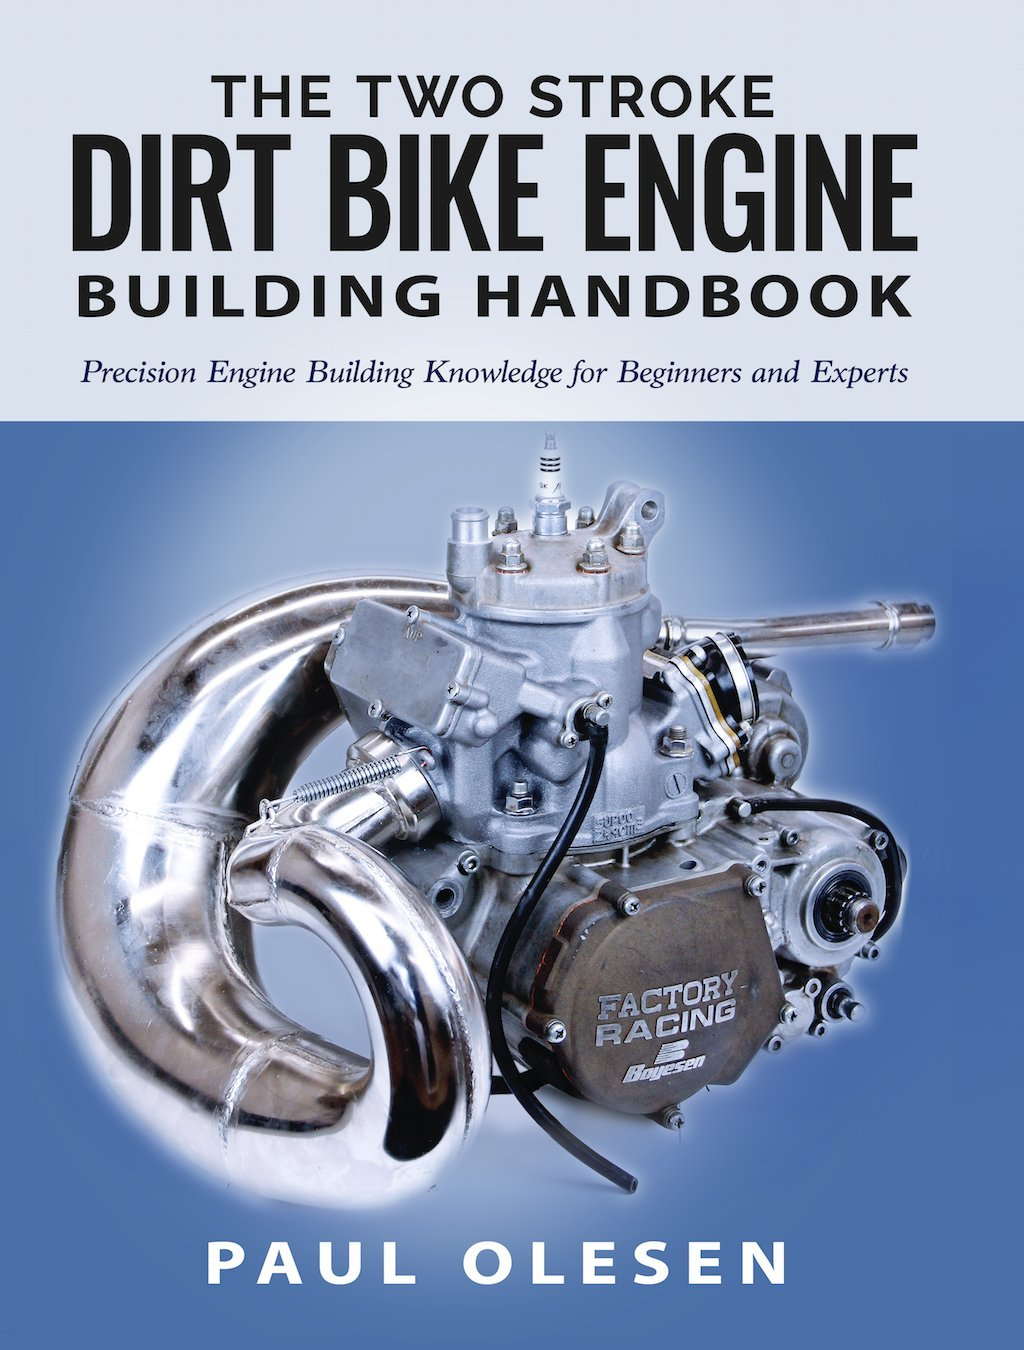 The Two Stroke Dirt Bike Engine Building Handbook: Paul Olesen, Kelsey  Jorissen: 9780996491518: Amazon.com: Books